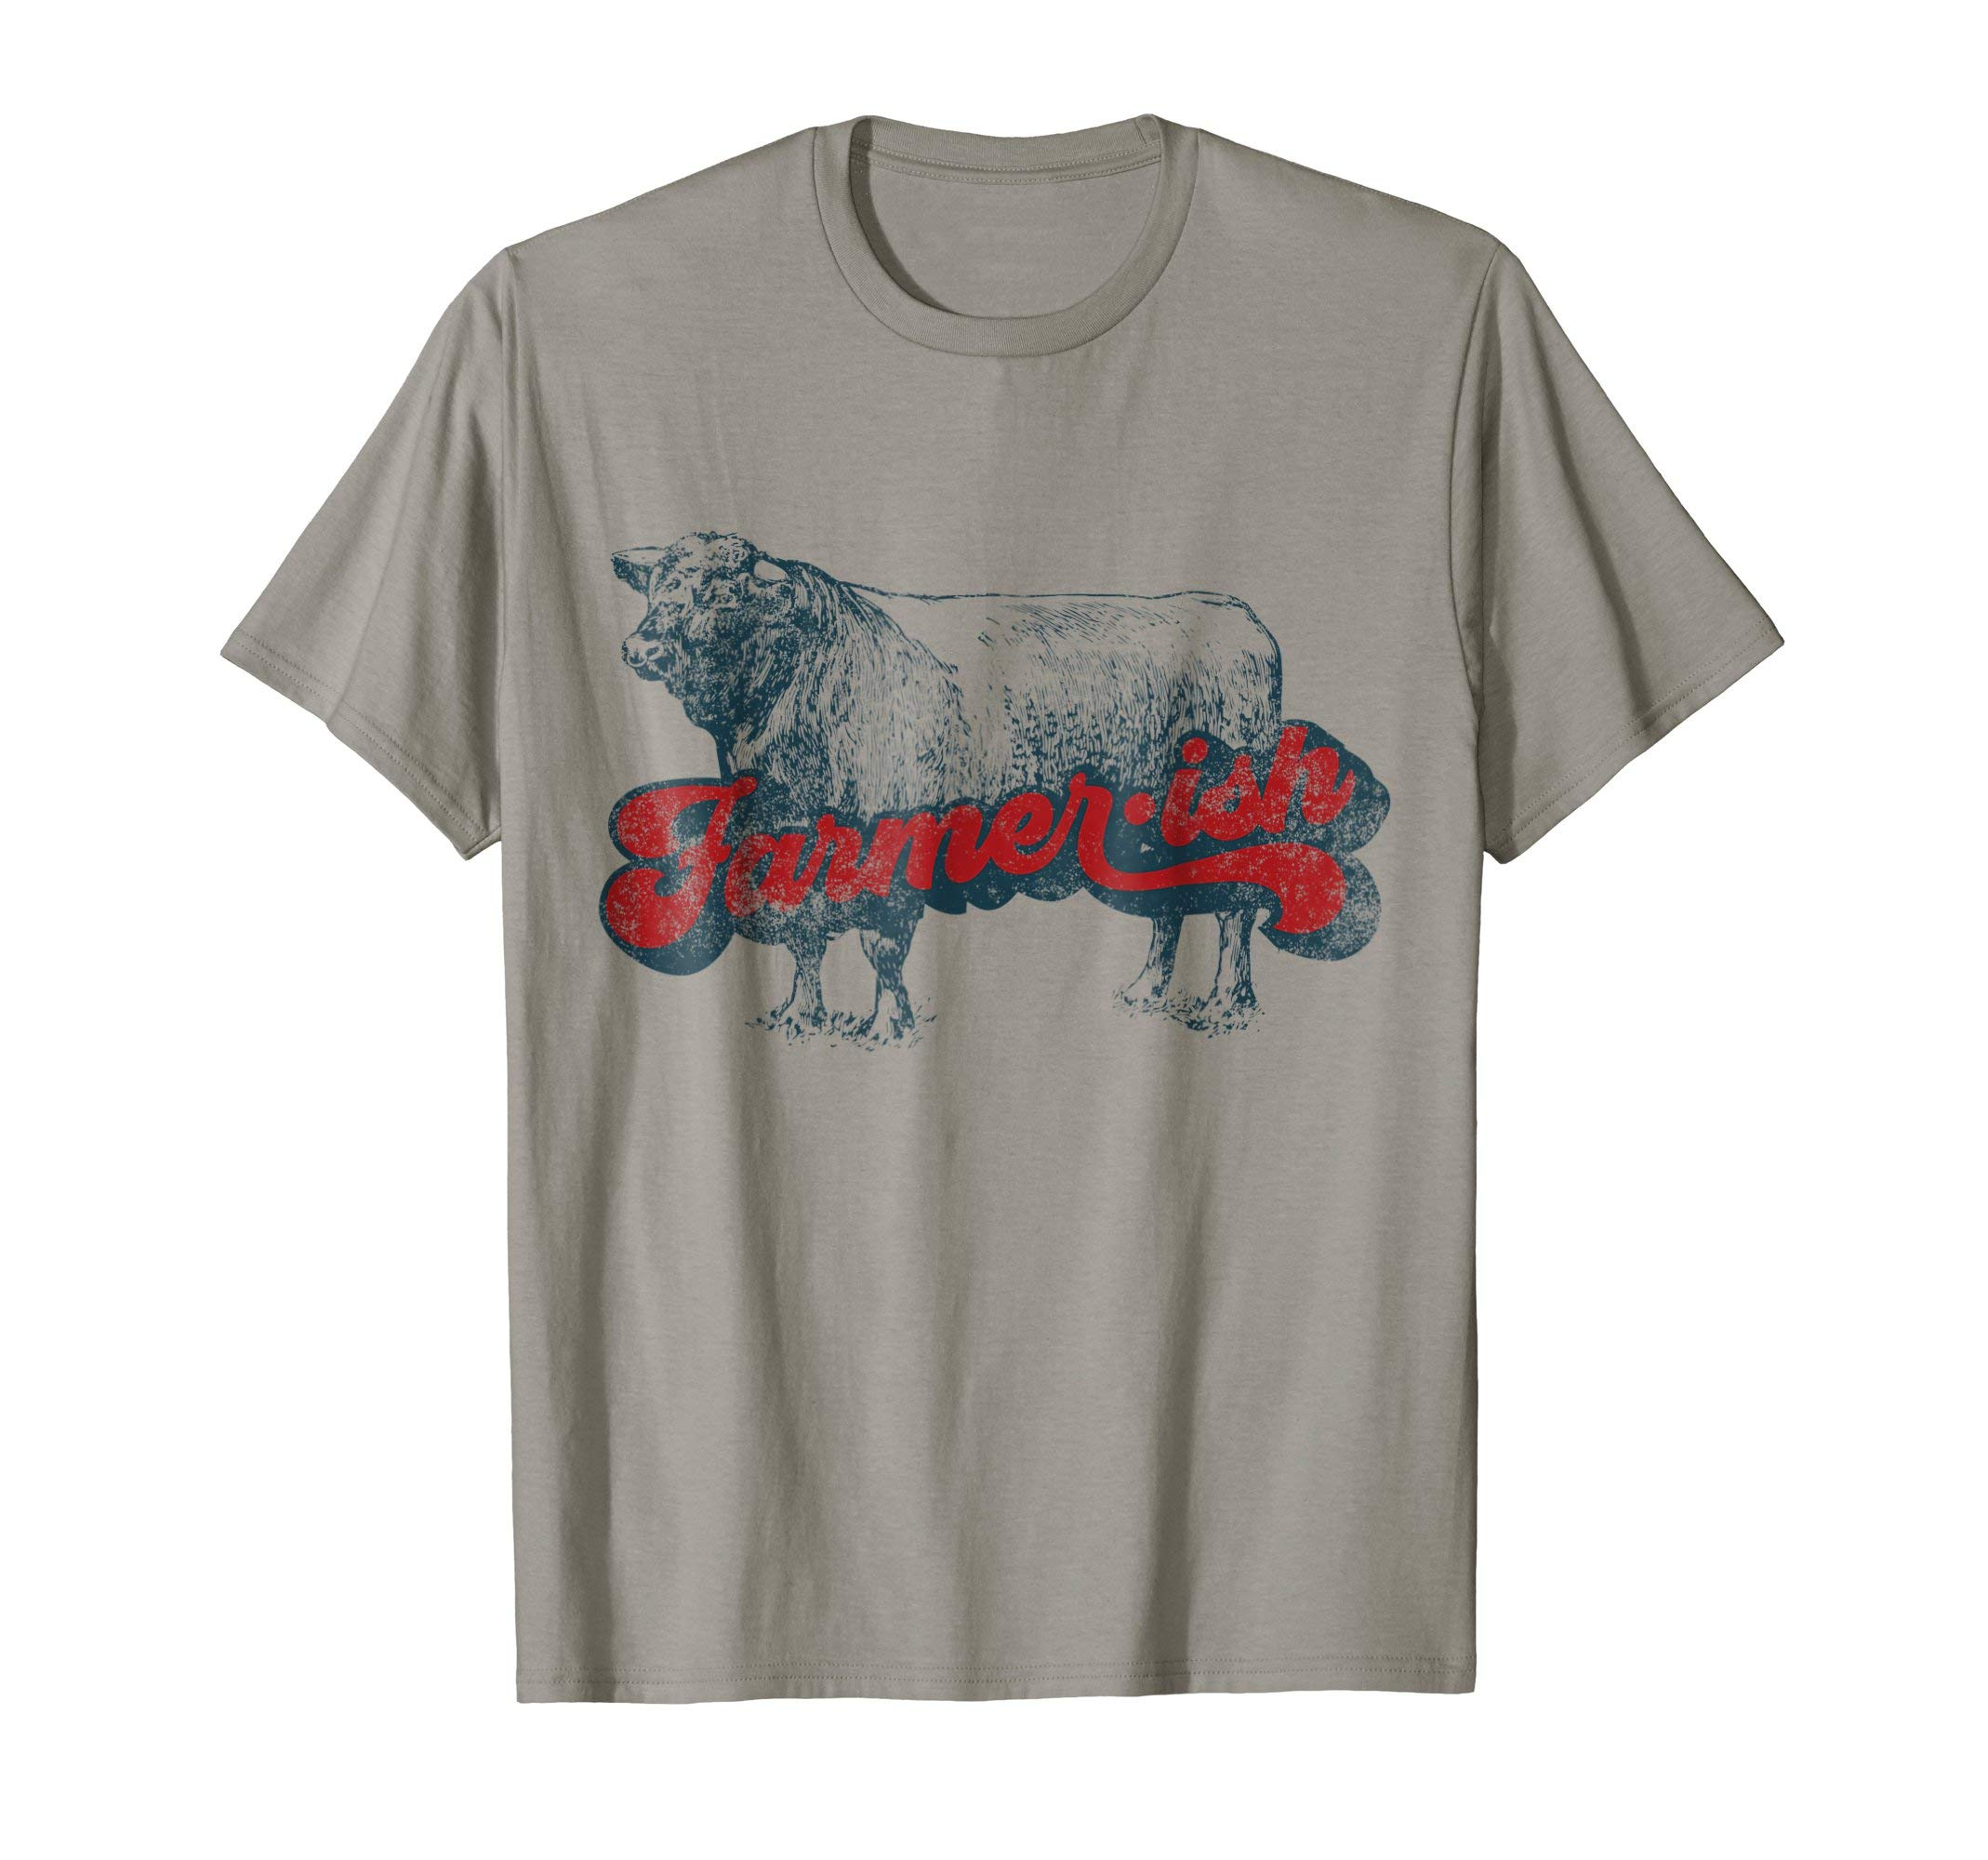 Farmer-ish T-shirt for Dairy Farmers and Cow Lovers